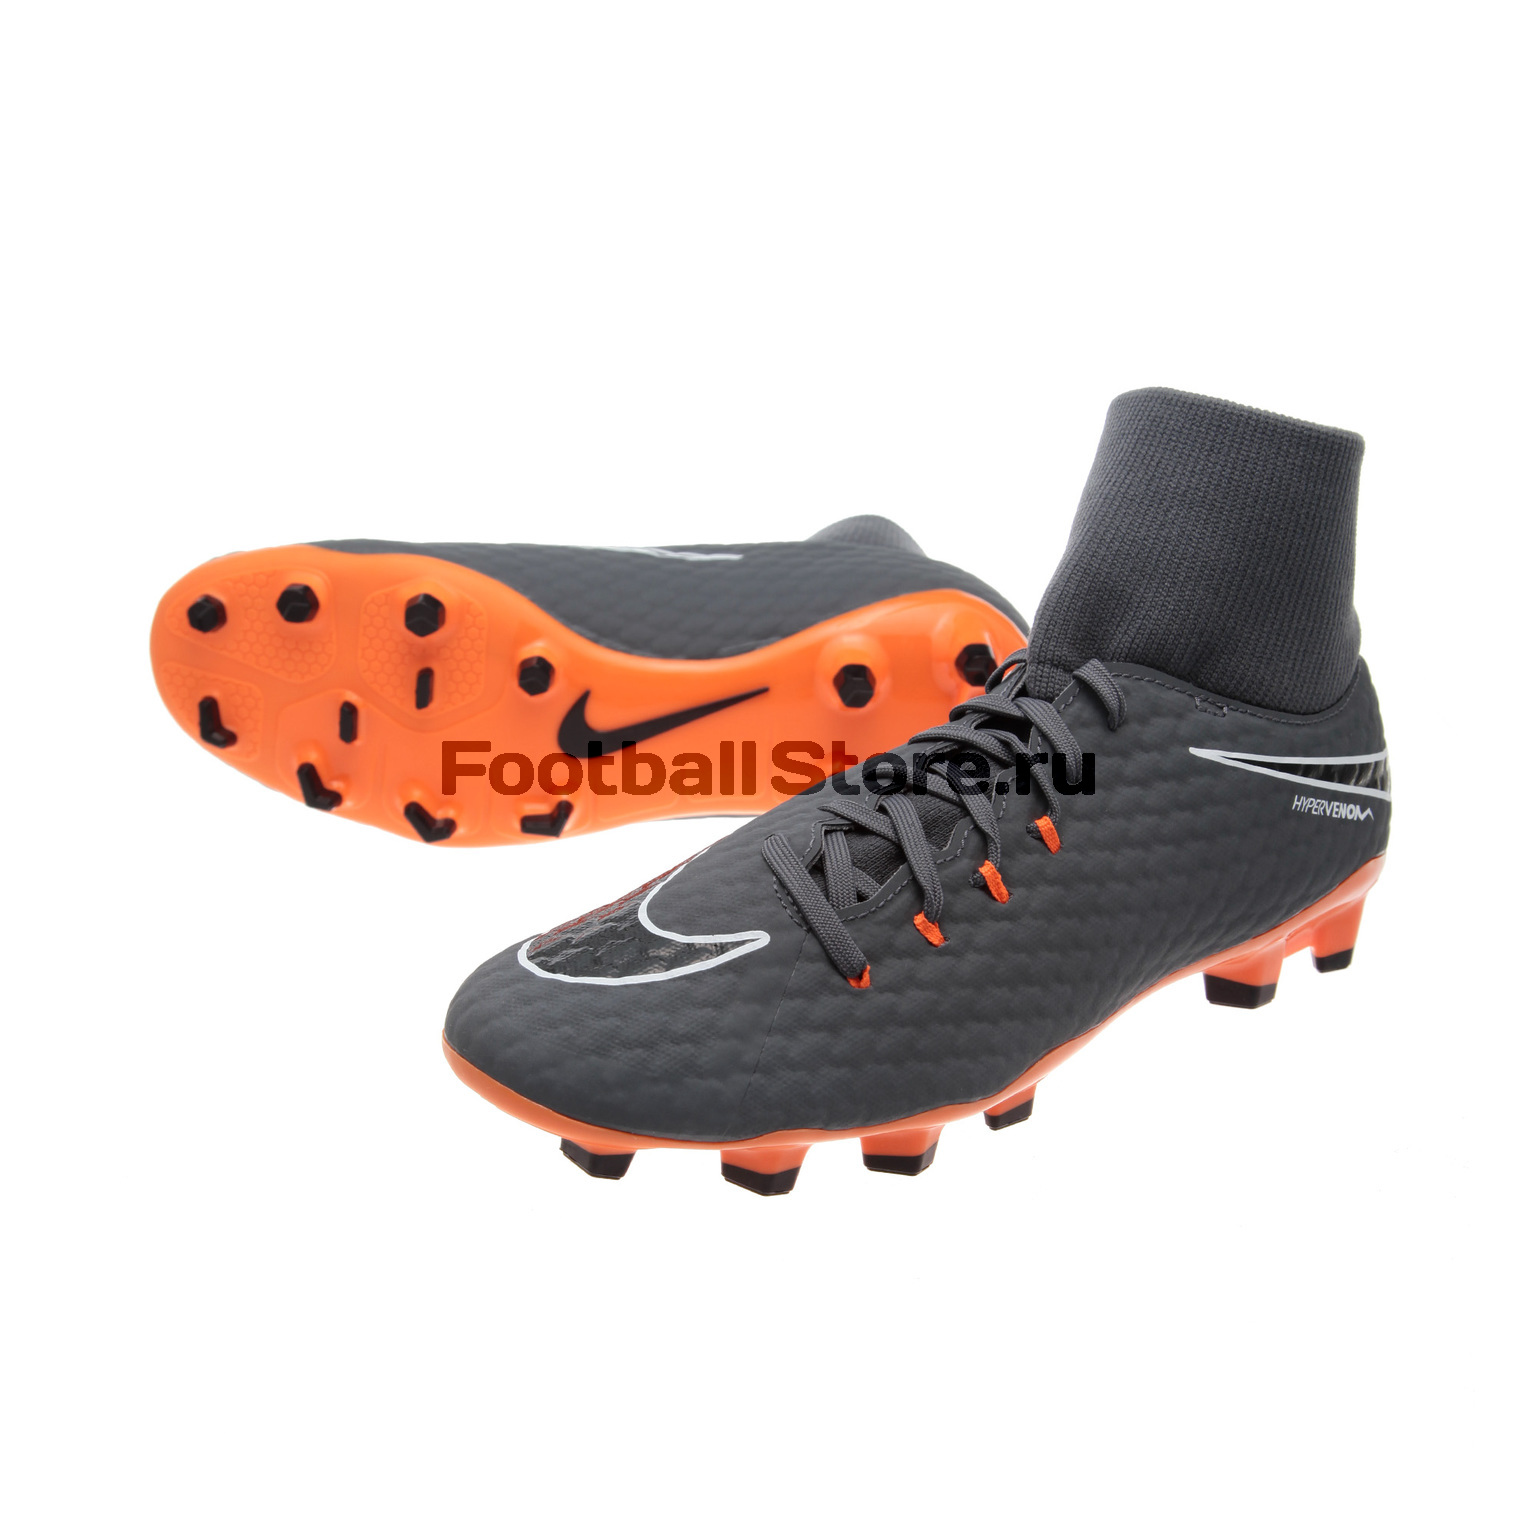 Бутсы Nike Phantom 3 Academy DF FG AH7268-081 бутсы nike шиповки nike jr tiempox legend vi tf 819191 018